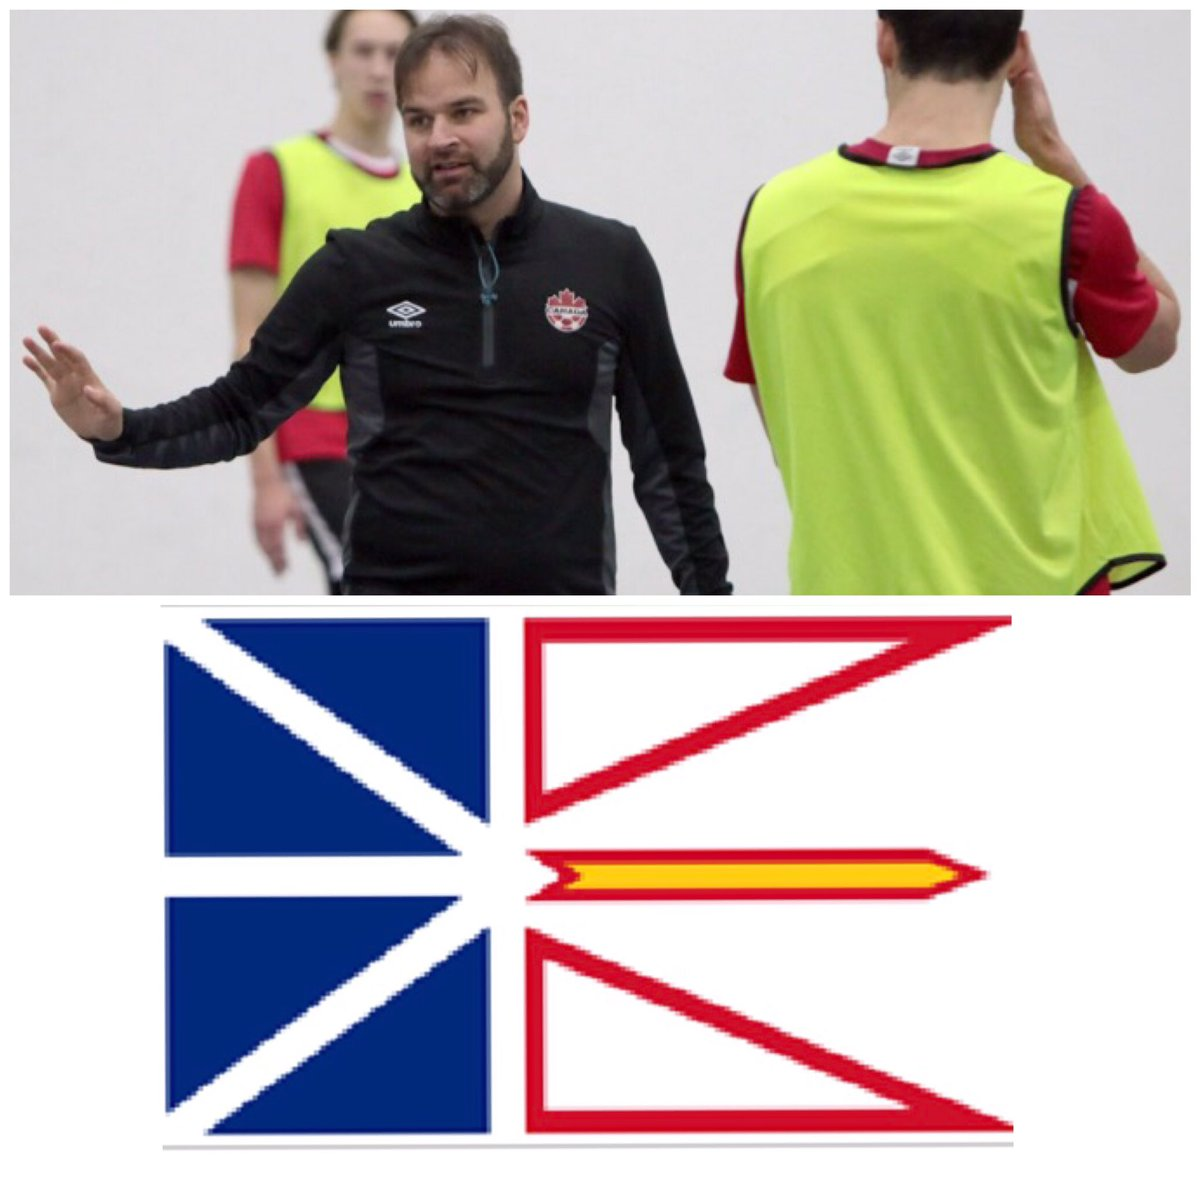 Beginning of another trip for me! One more province to join the futsal world and help build a long lasting program. ID CAMPs and coaches clinics are on the menu for the next 3 days! #newfoundland #eastcoast #futsalisnow